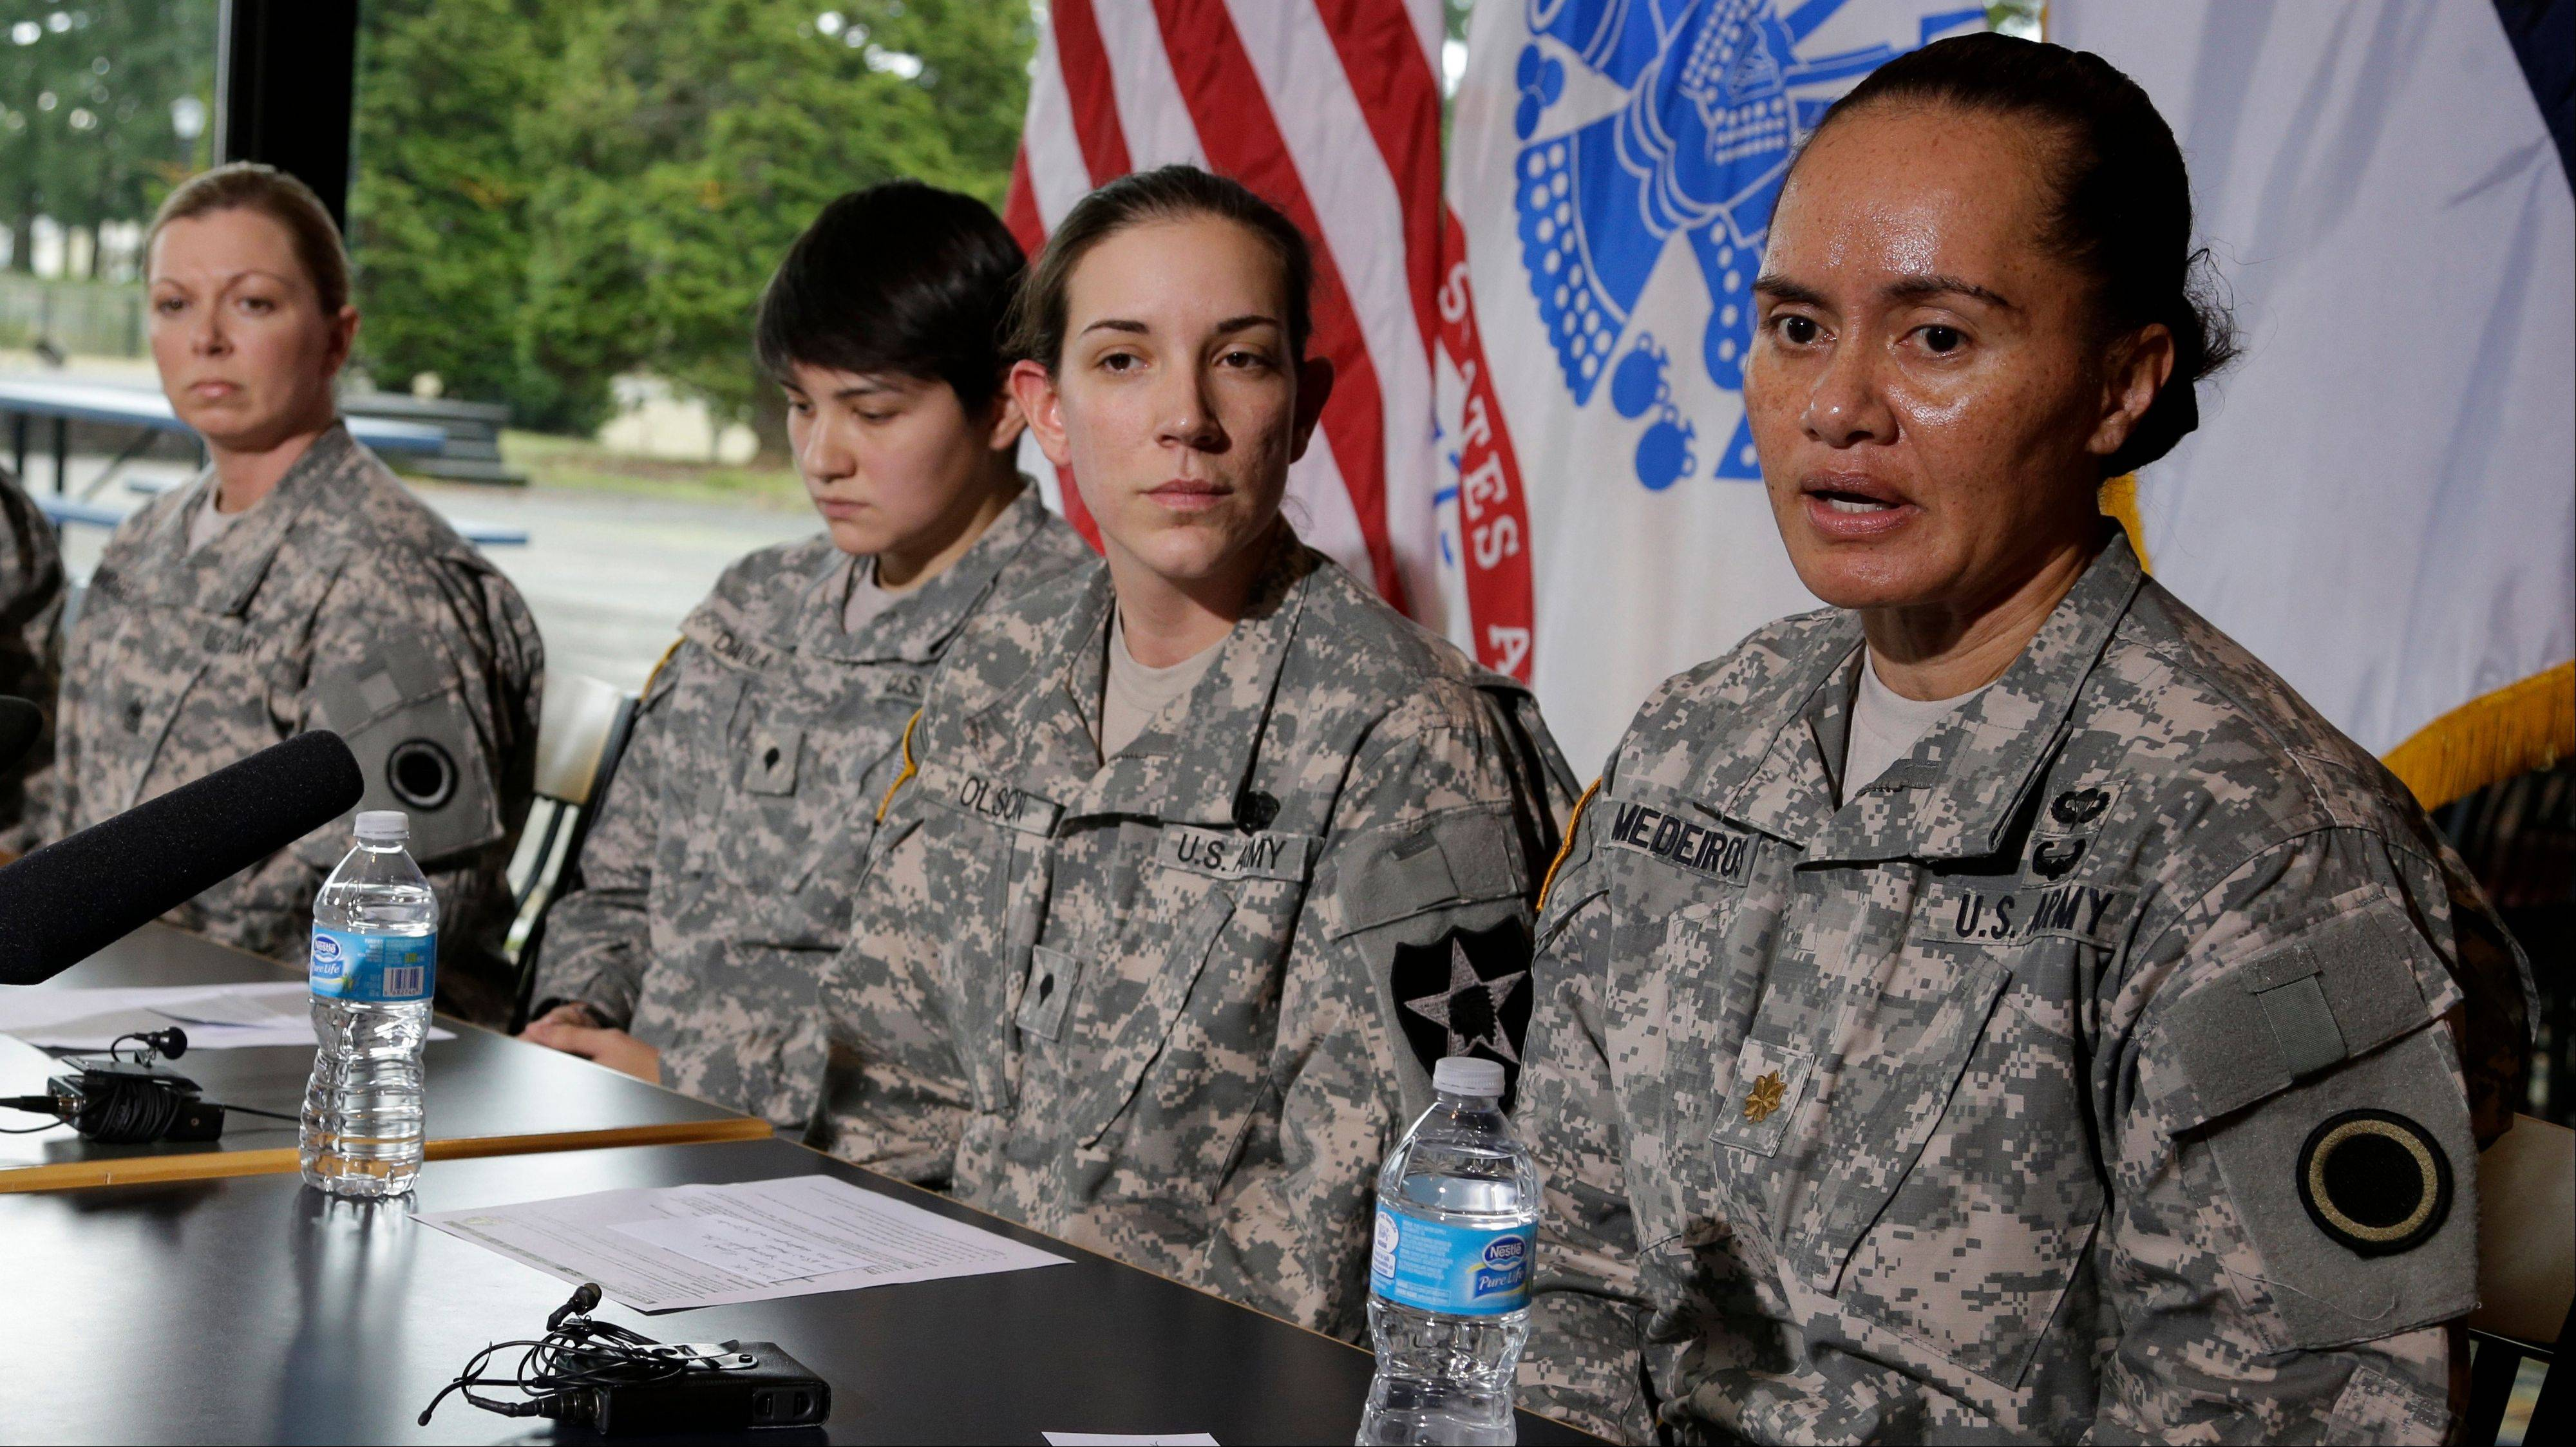 U.S. Army soldiers, from left, 1st Sgt. Marcia McGee, Spc. Vanessa Davila, Spc. Heidi Olson and Maj. Sheila Medeiros talk to reporters Thursday at Joint Base Lewis McChord, Wash., about the decision announced by defense leaders Thursday to open a quarter-million combat and other military positions to service members regardless of gender.